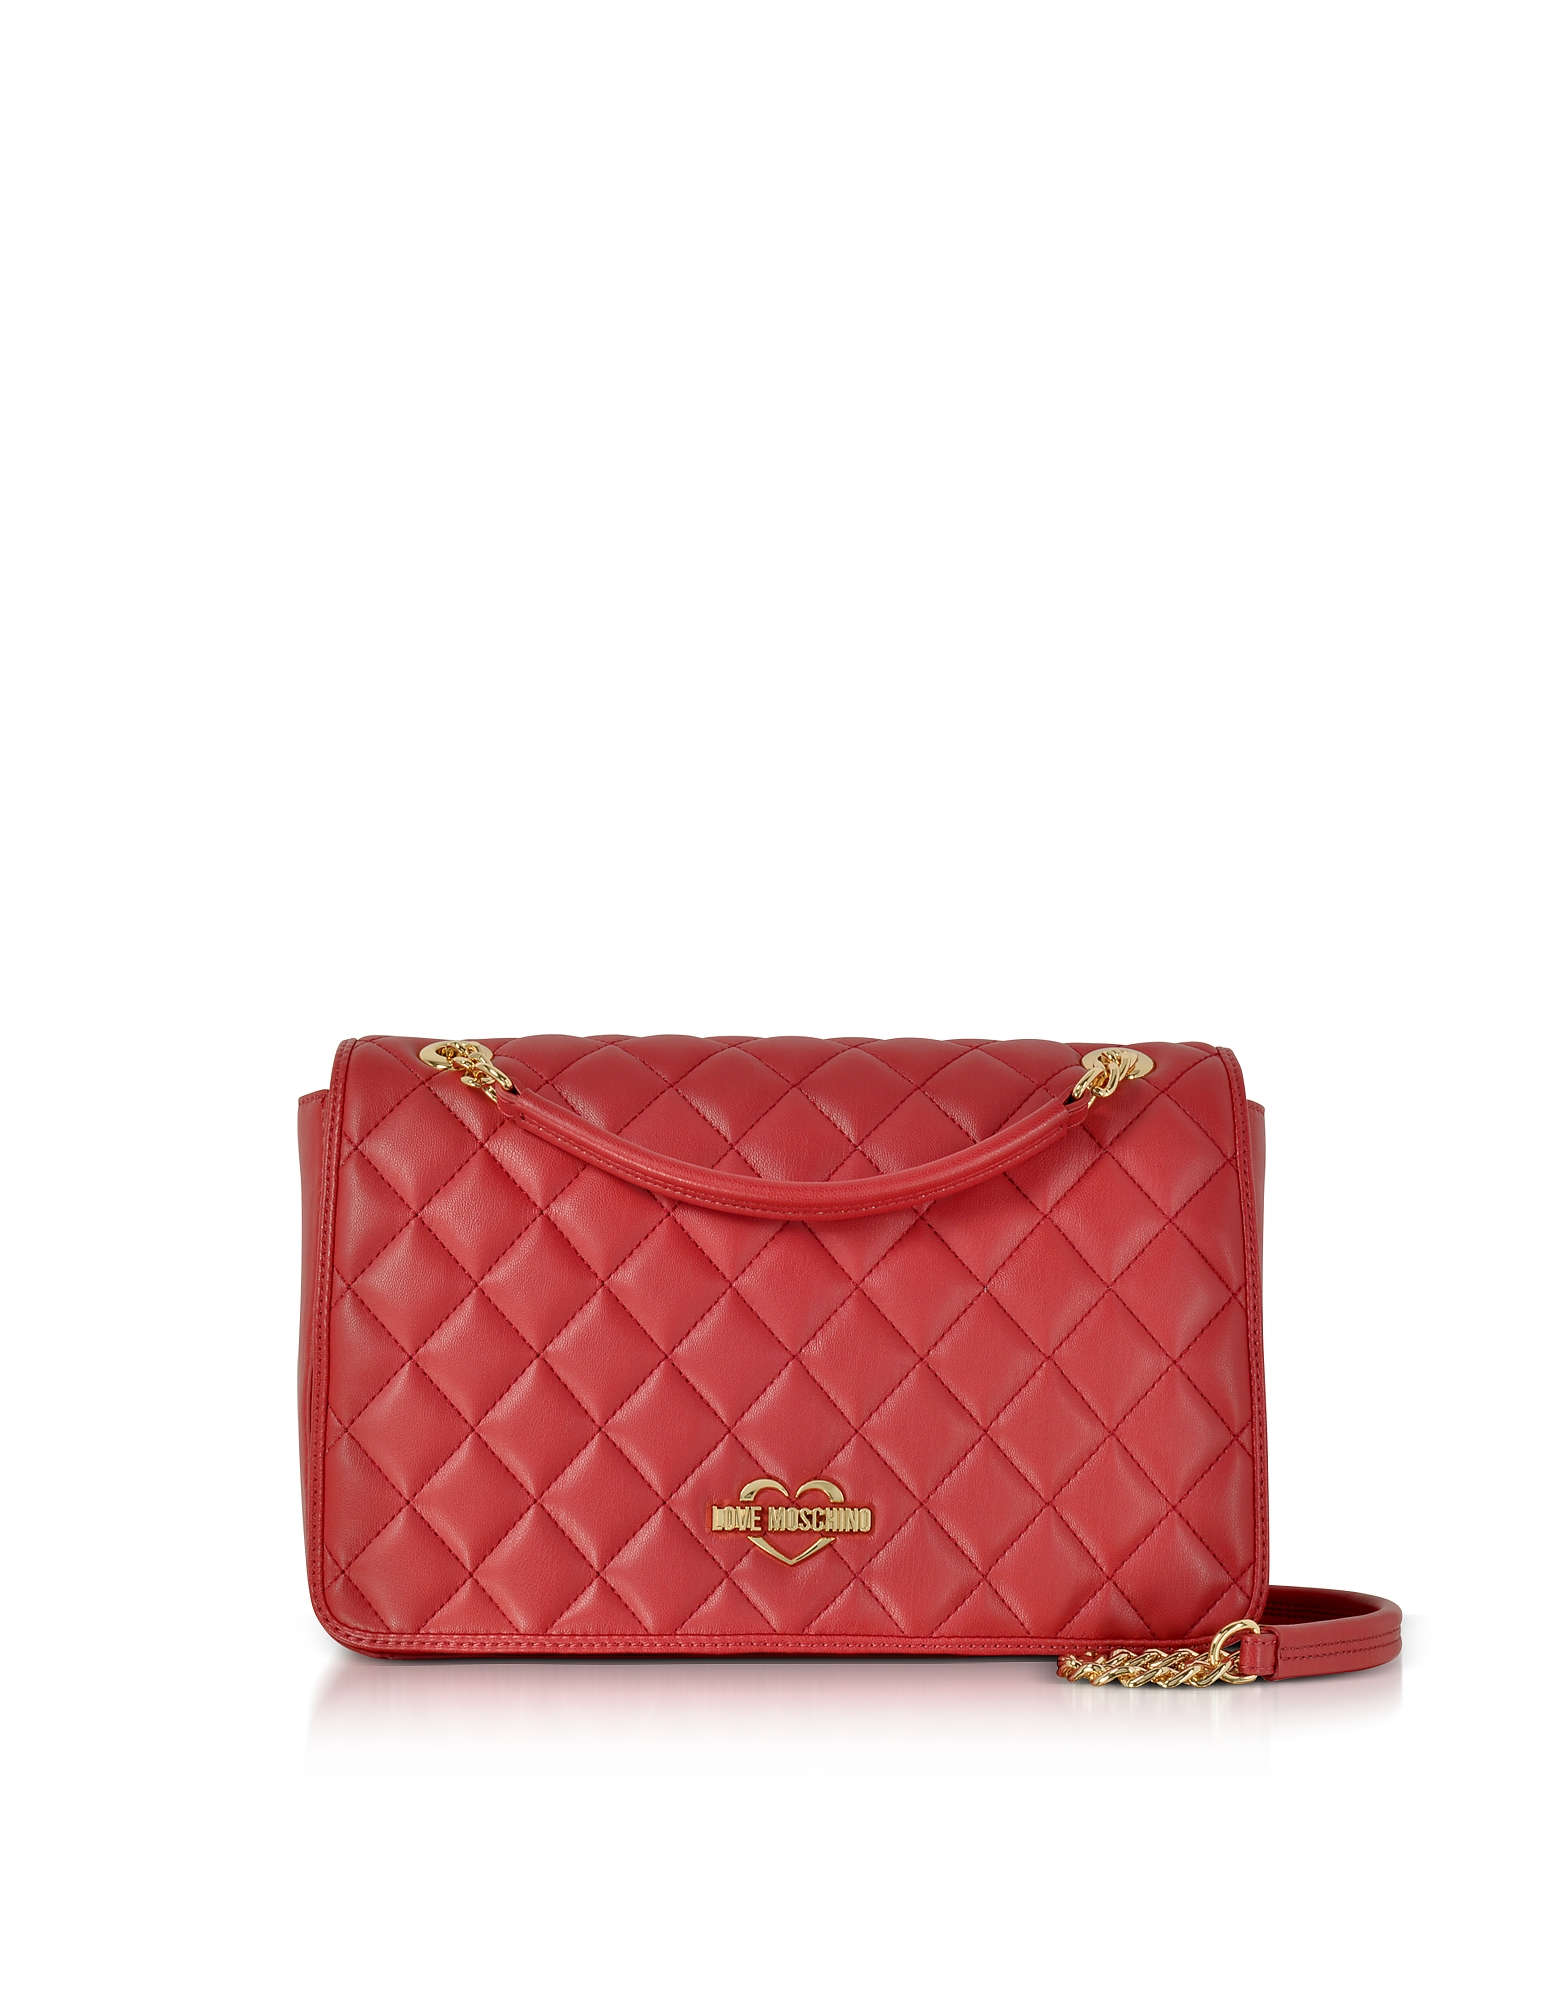 Love Moschino Handbags, Red Superquilted Eco-Leather Shoulder Bag